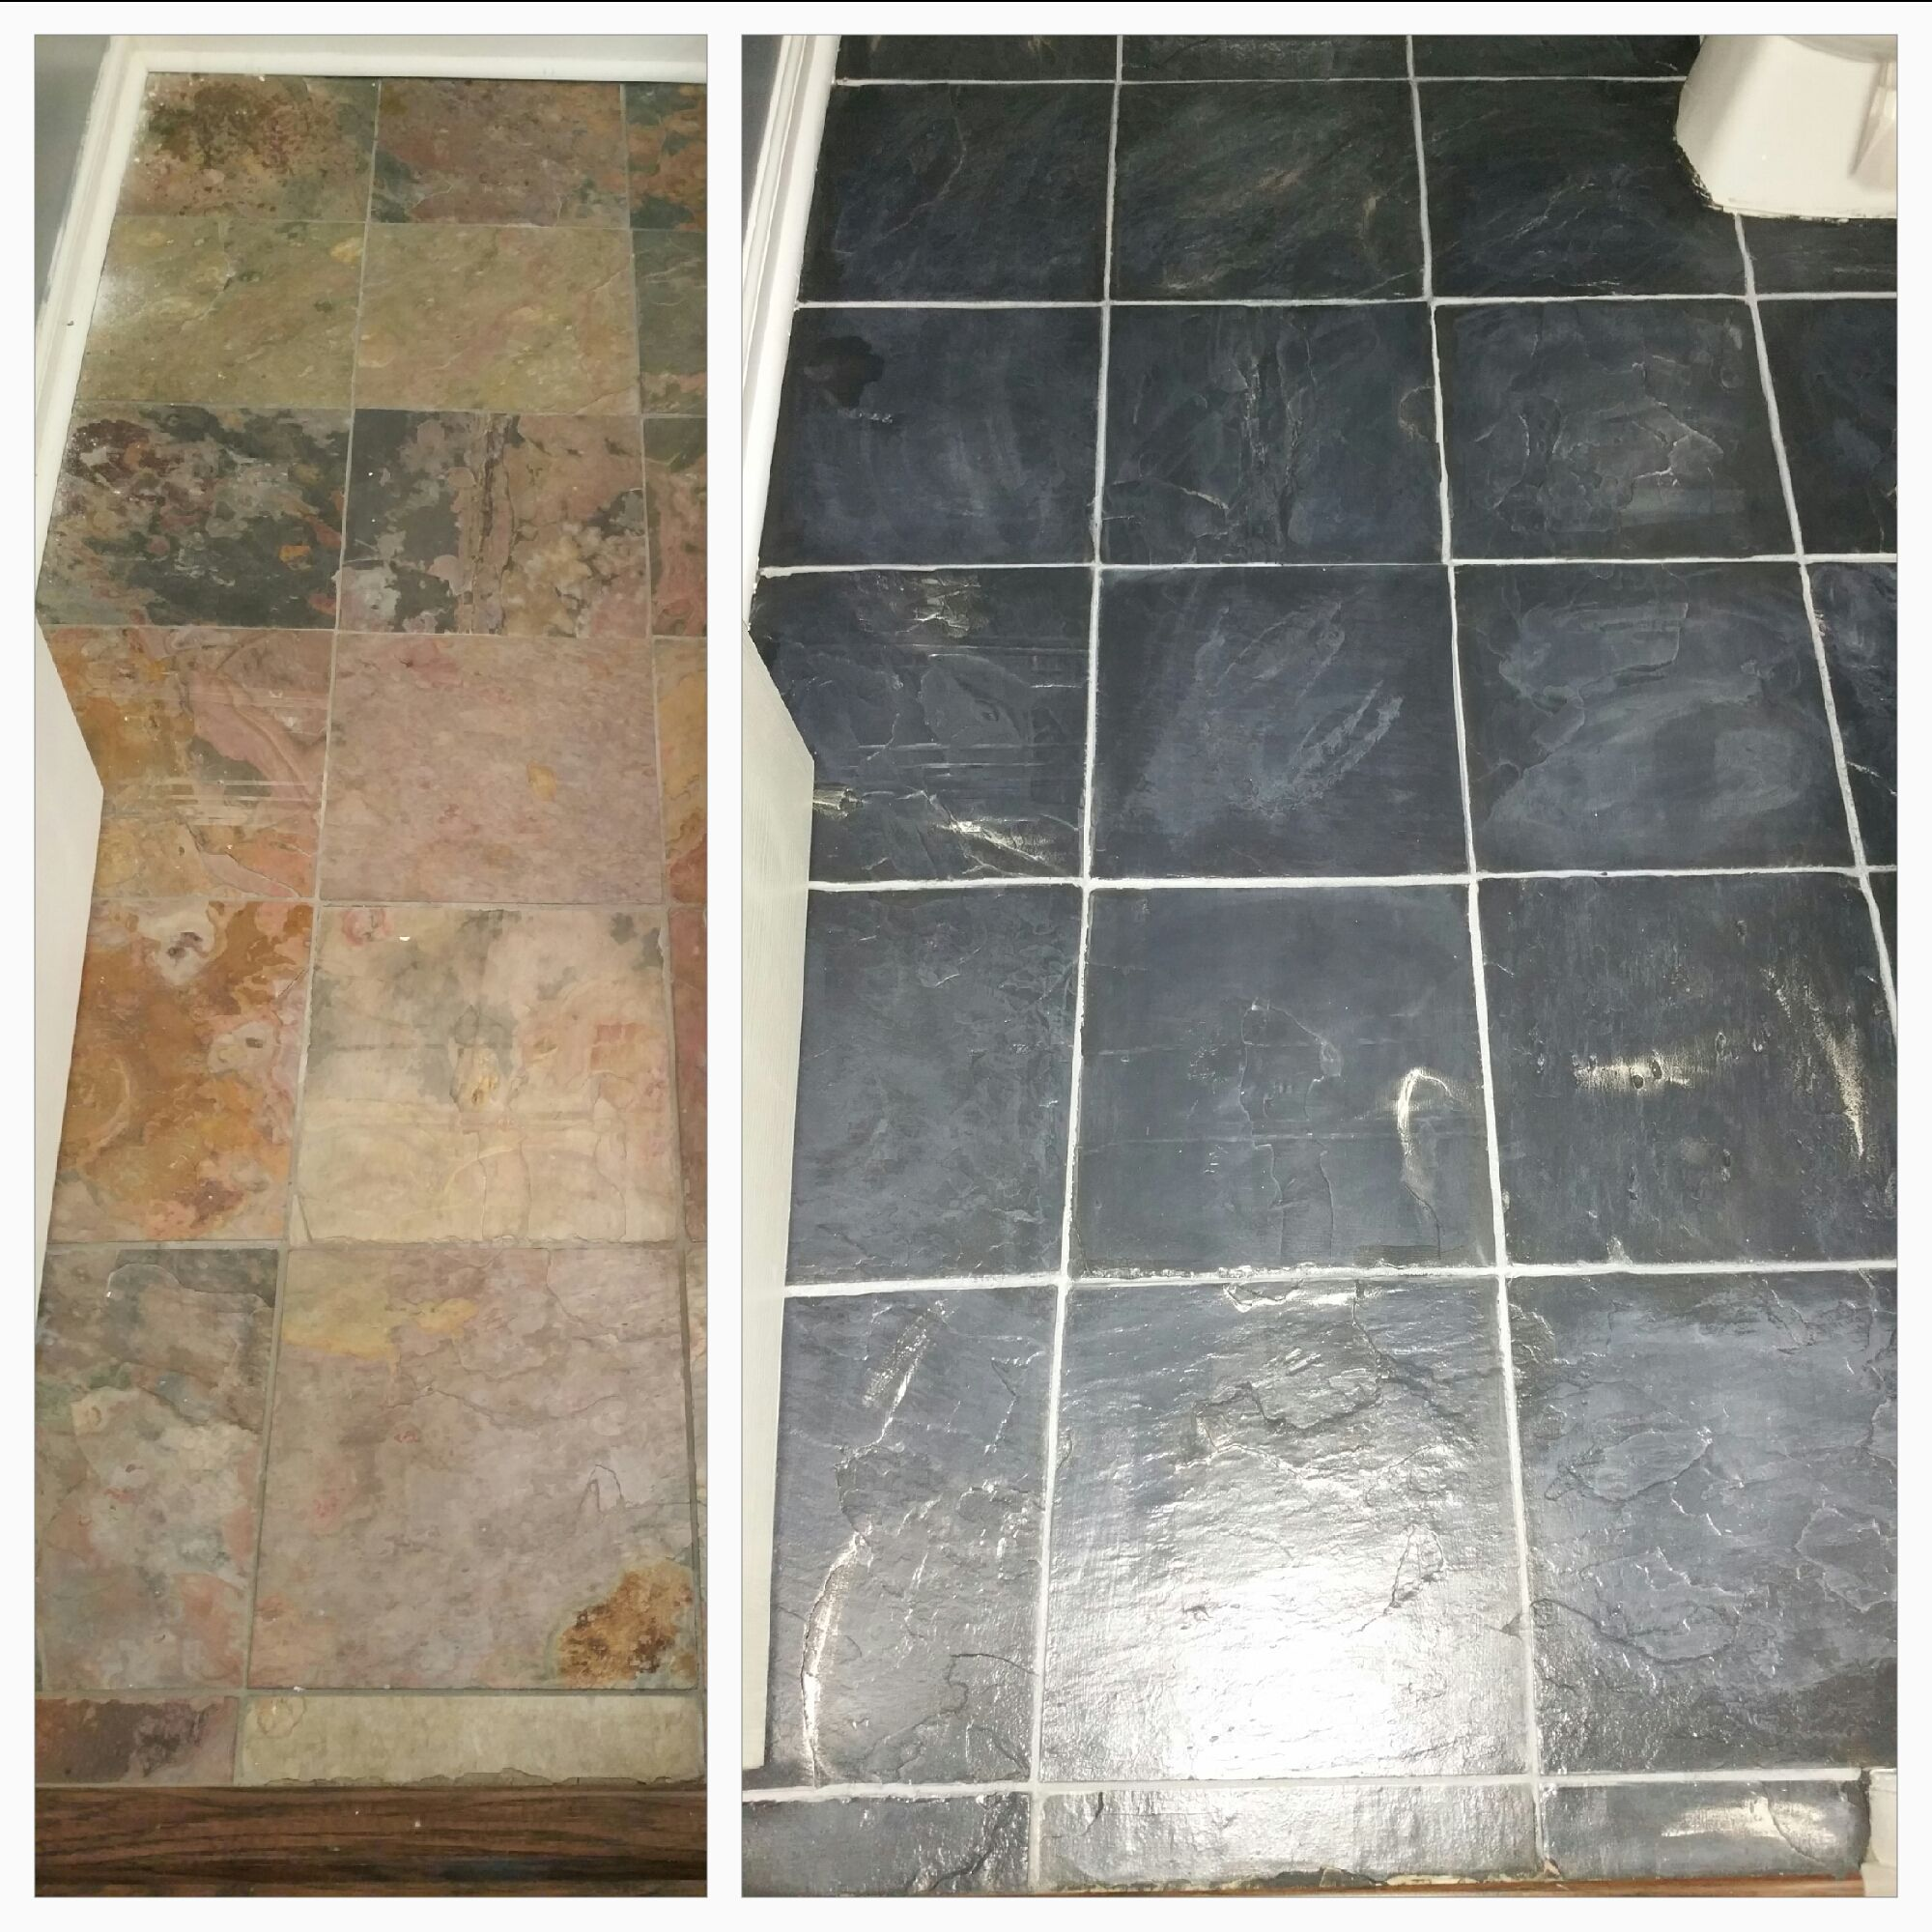 I Painted These Slate Tiles In Graphite With A Paris Grey Wash Pewter Wax Is Applied In No Pa Painting Ceramic Tile Floor Slate Flooring Painting Tile Floors